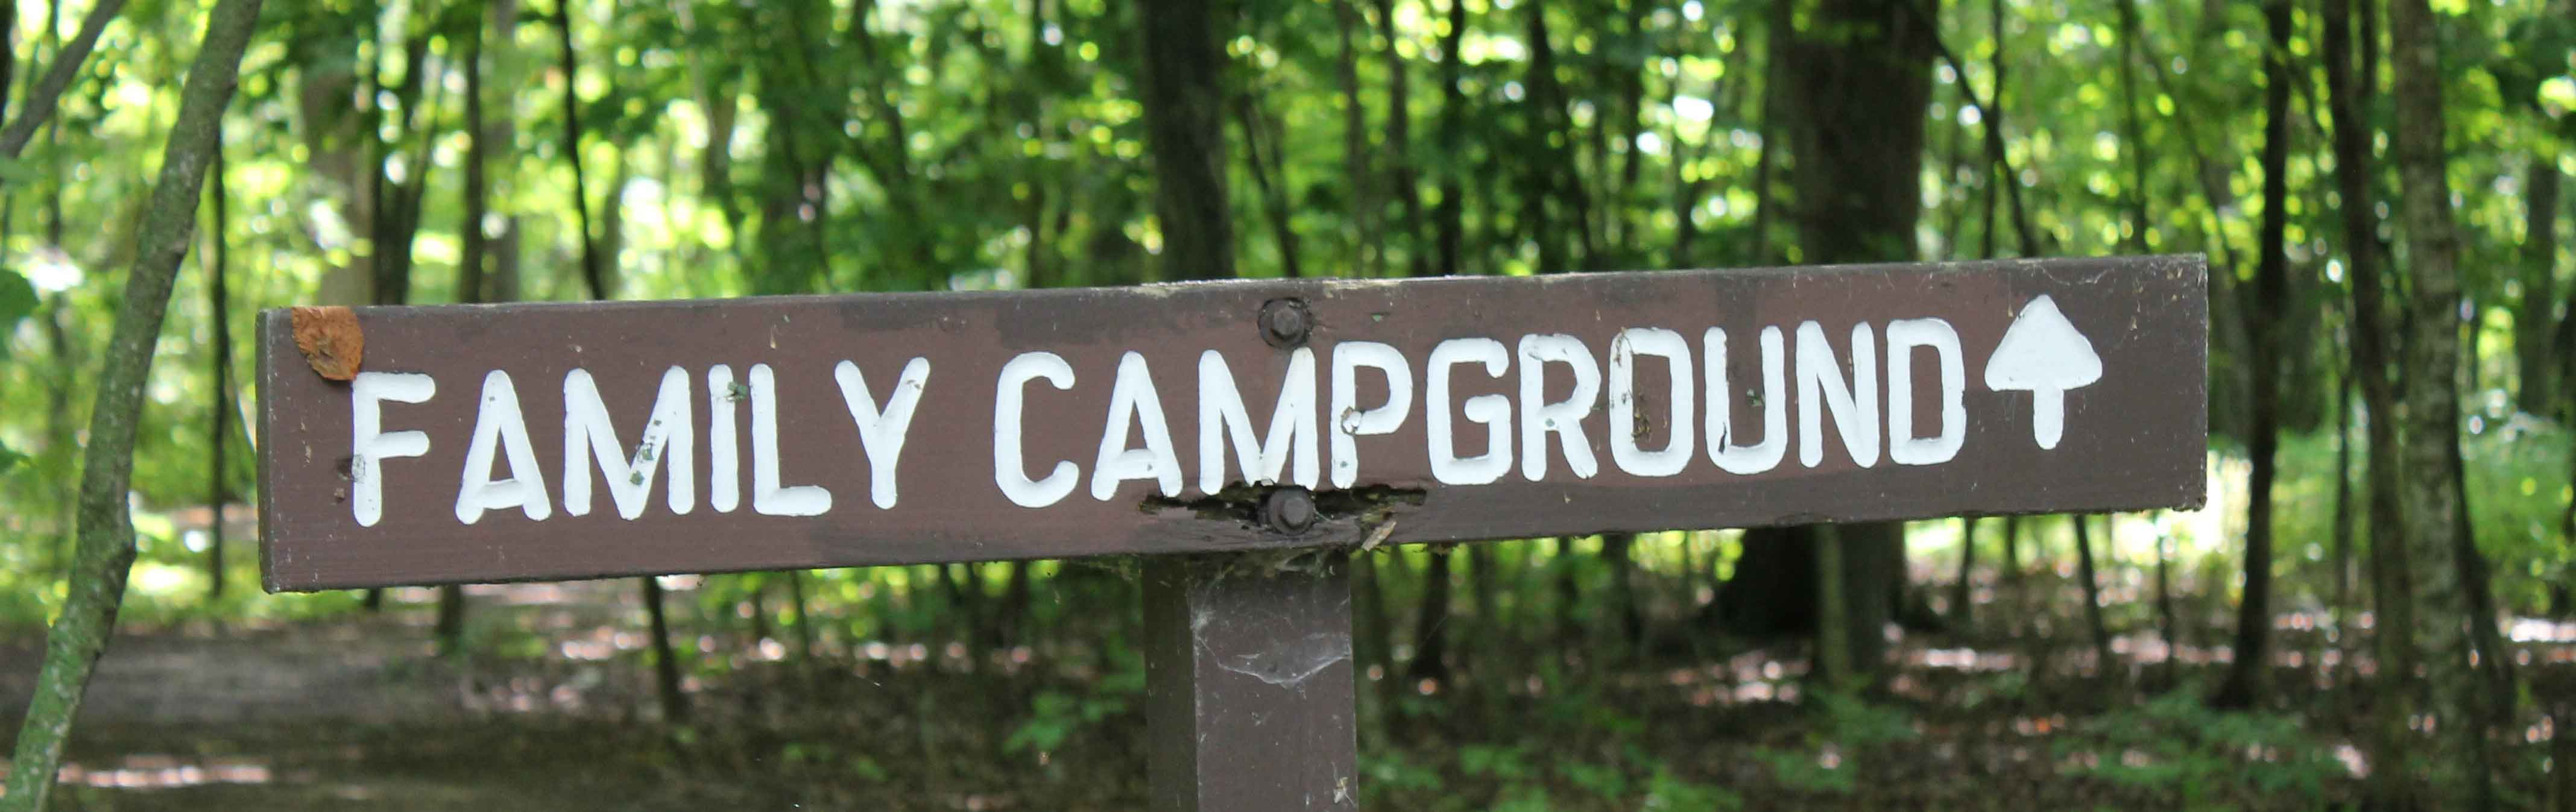 Family campground trail sign.